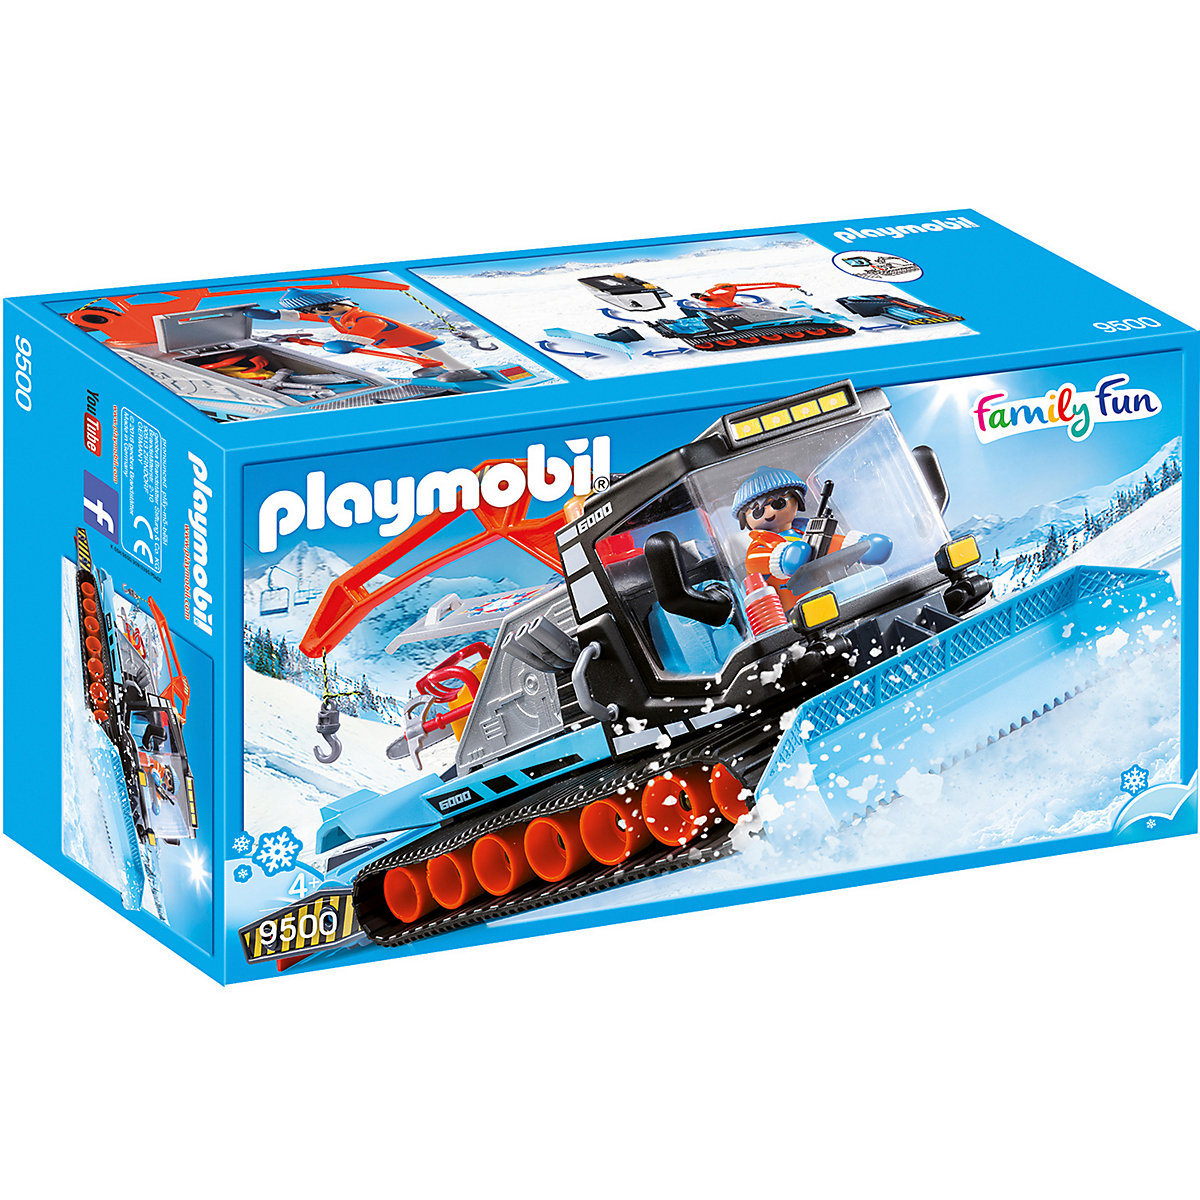 Playmobil 9500 Ratrak